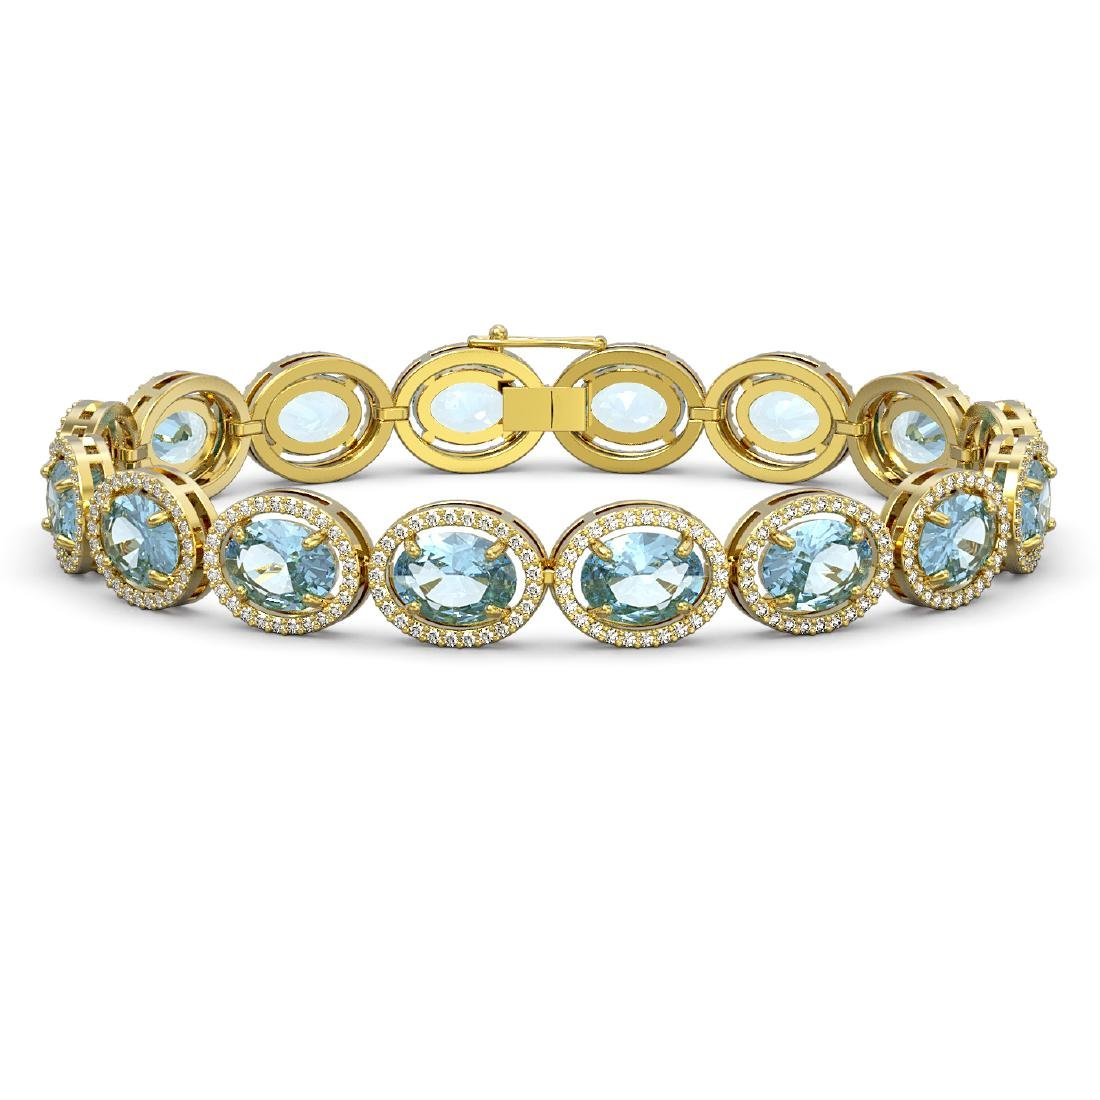 23.44 CTW Aquamarine & Diamond Halo Bracelet 10K Yellow